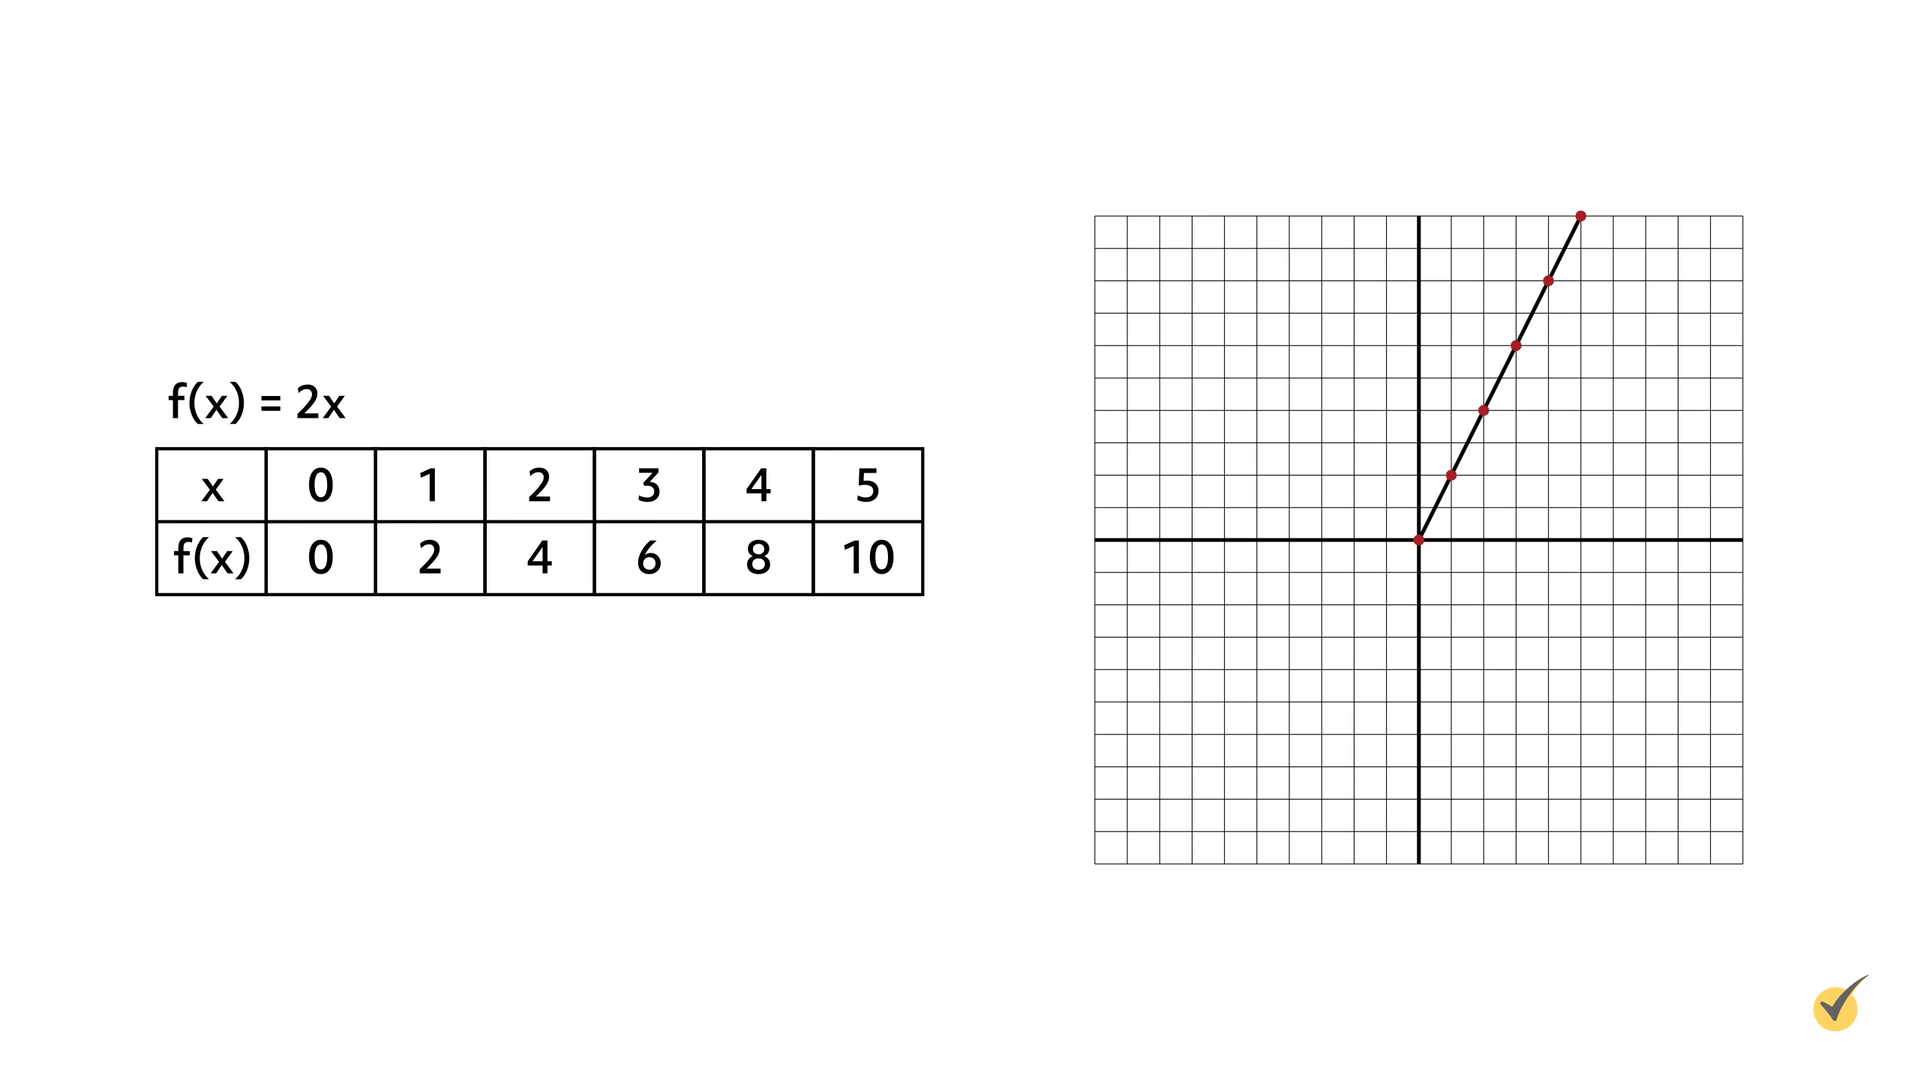 Image of the table and graph for f(x)= 2x